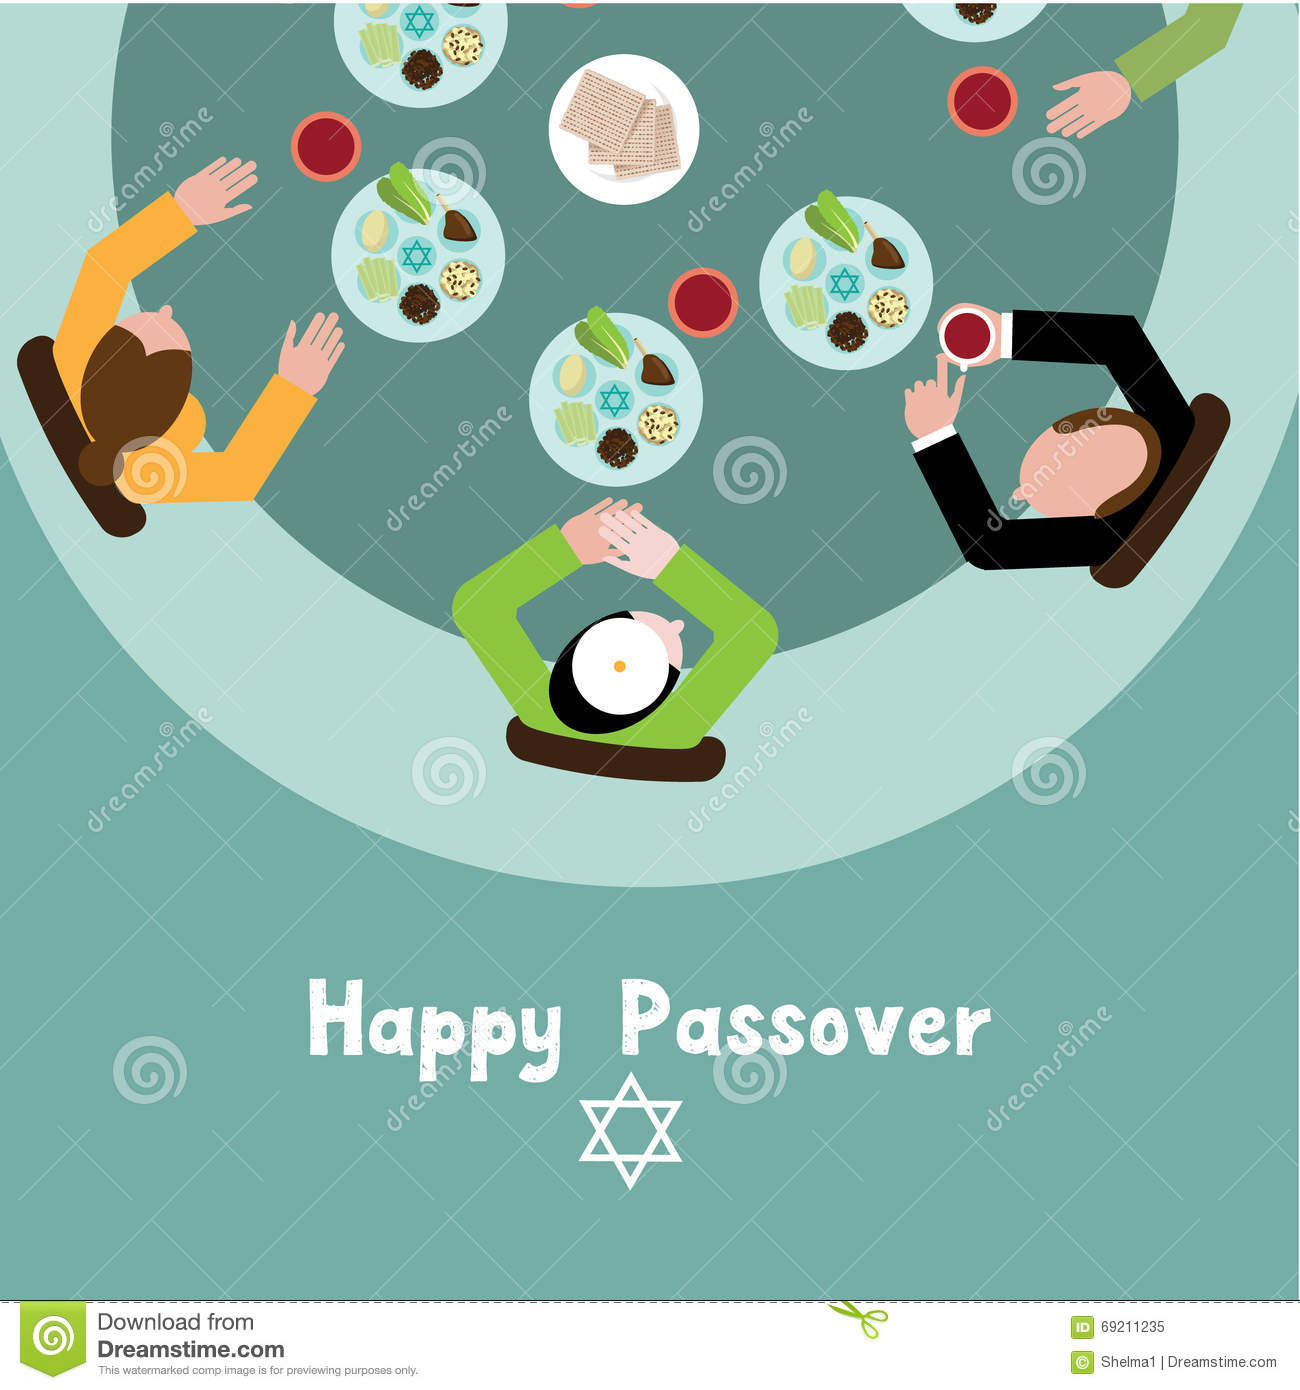 Happy passover seder meal greeting card stock vector illustration download comp m4hsunfo